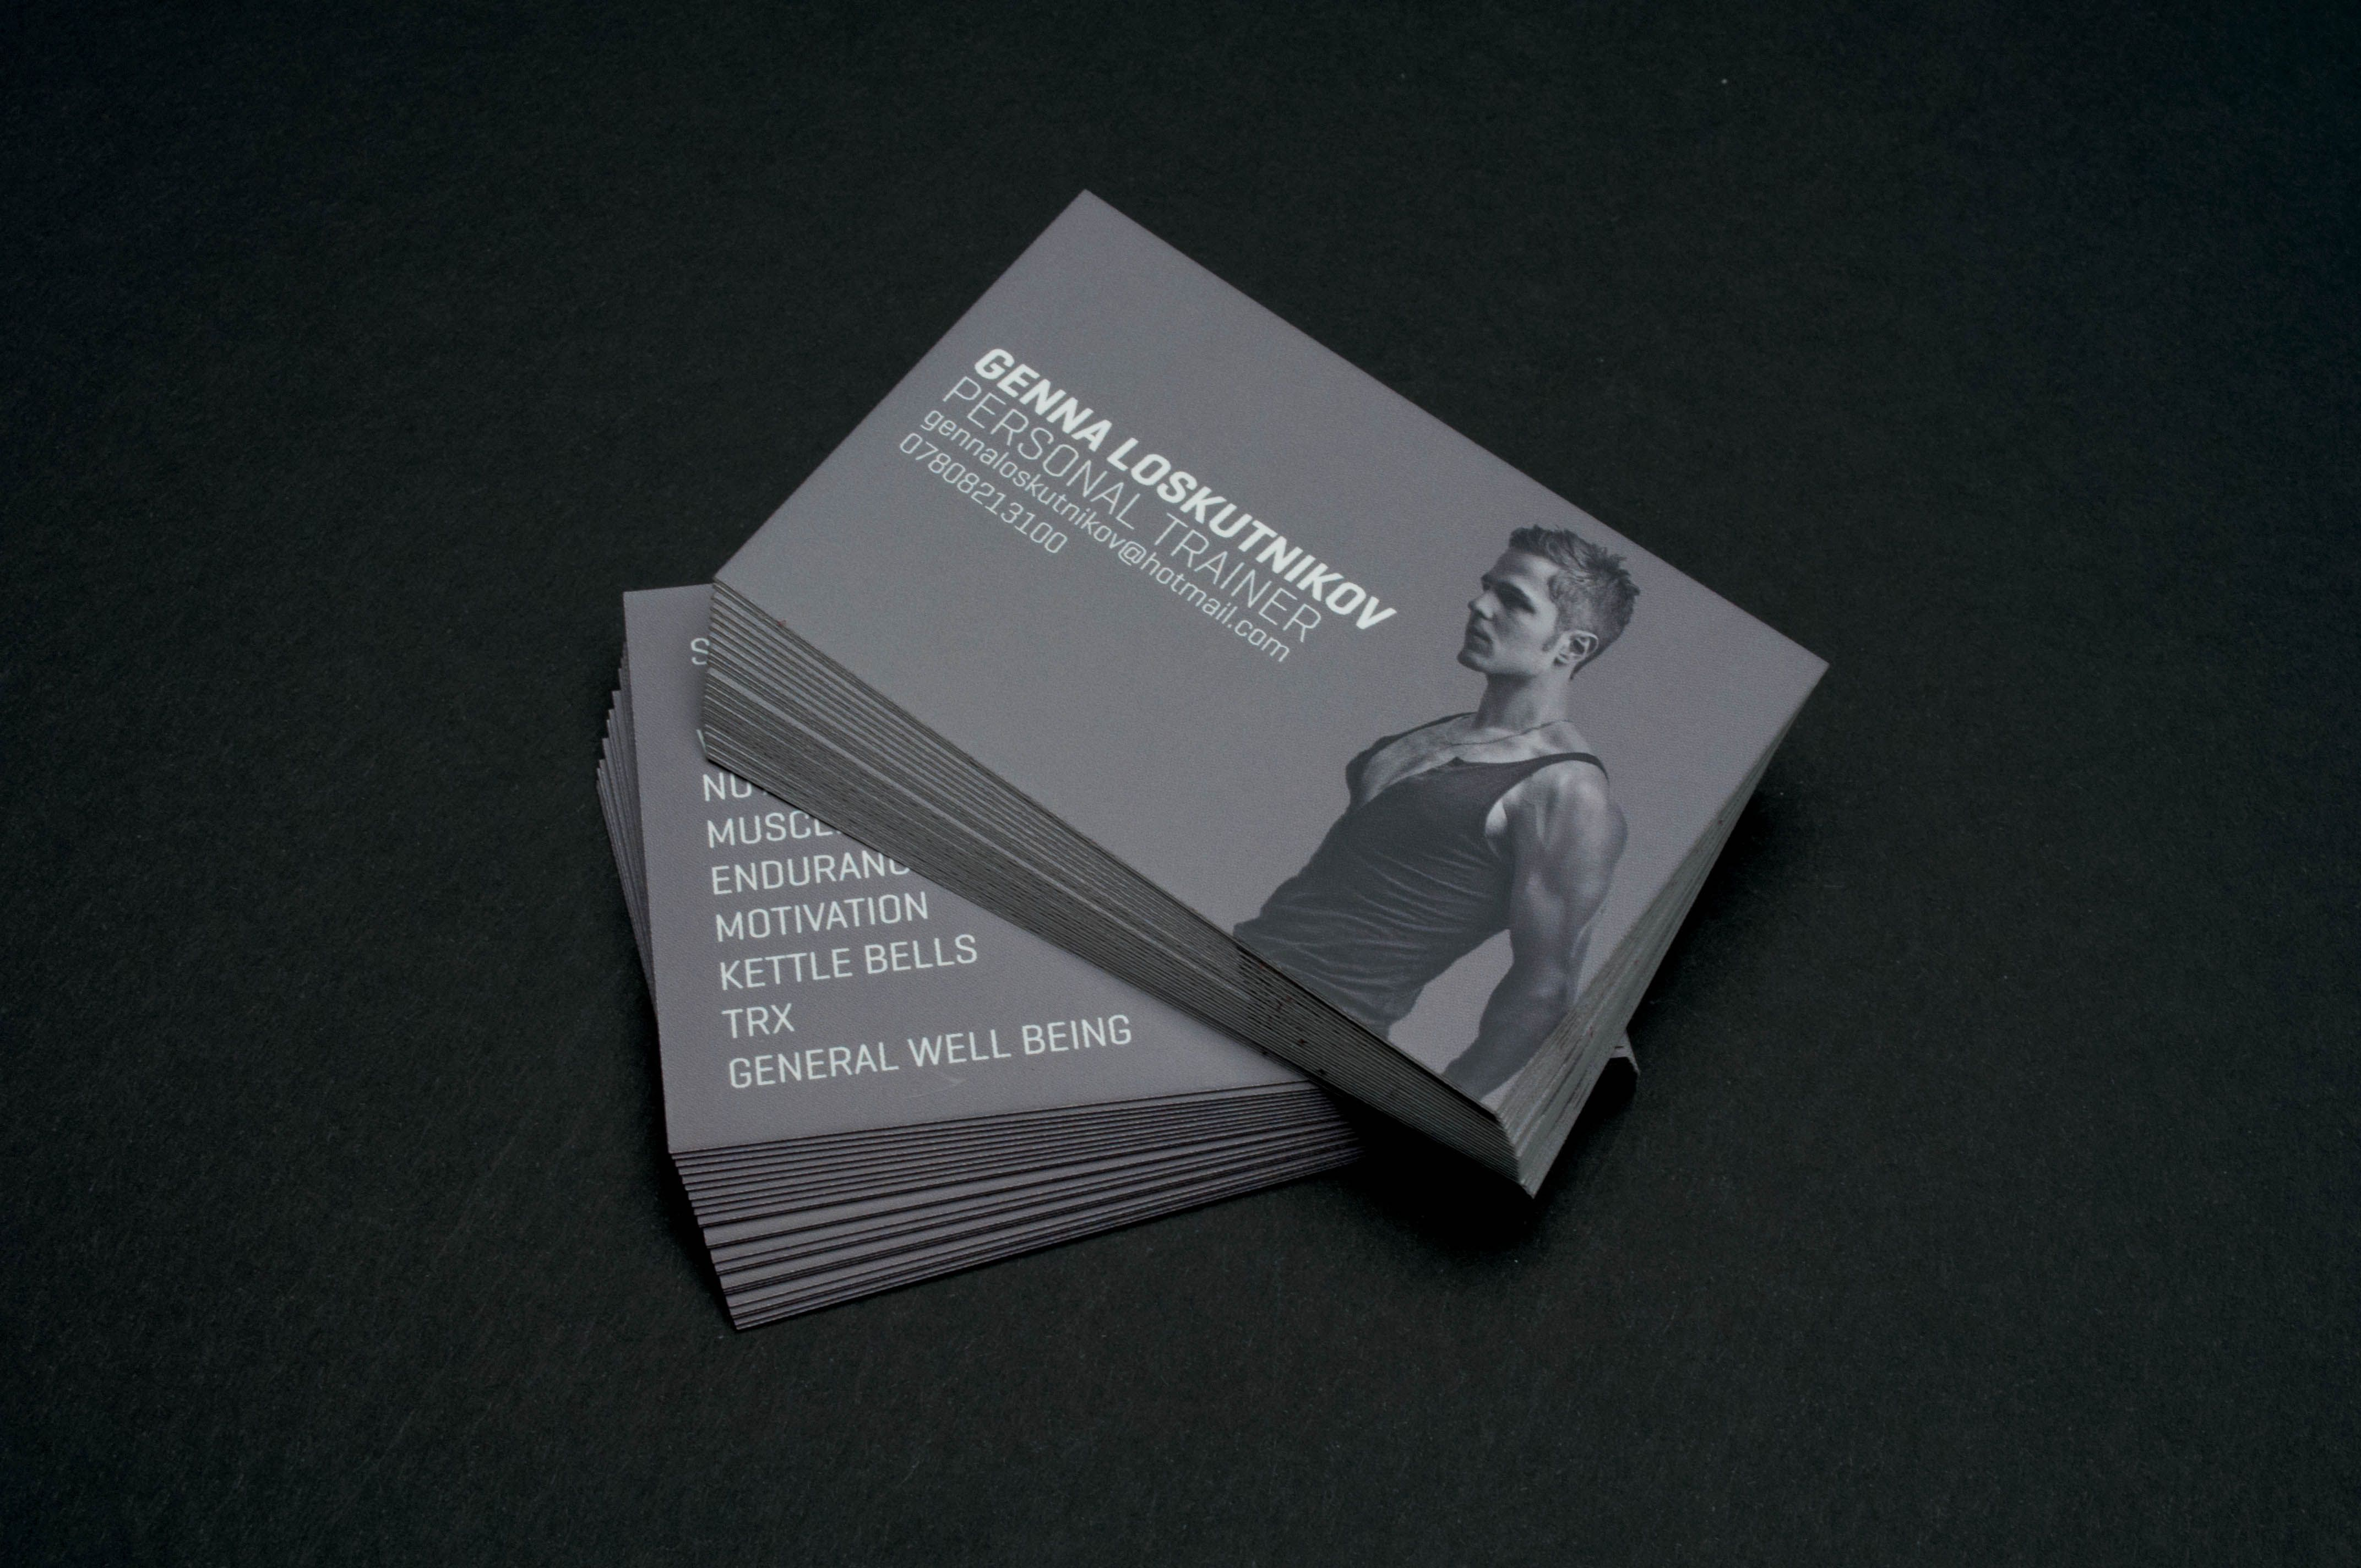 personal trainer business card - Google Search | PT | Pinterest ...